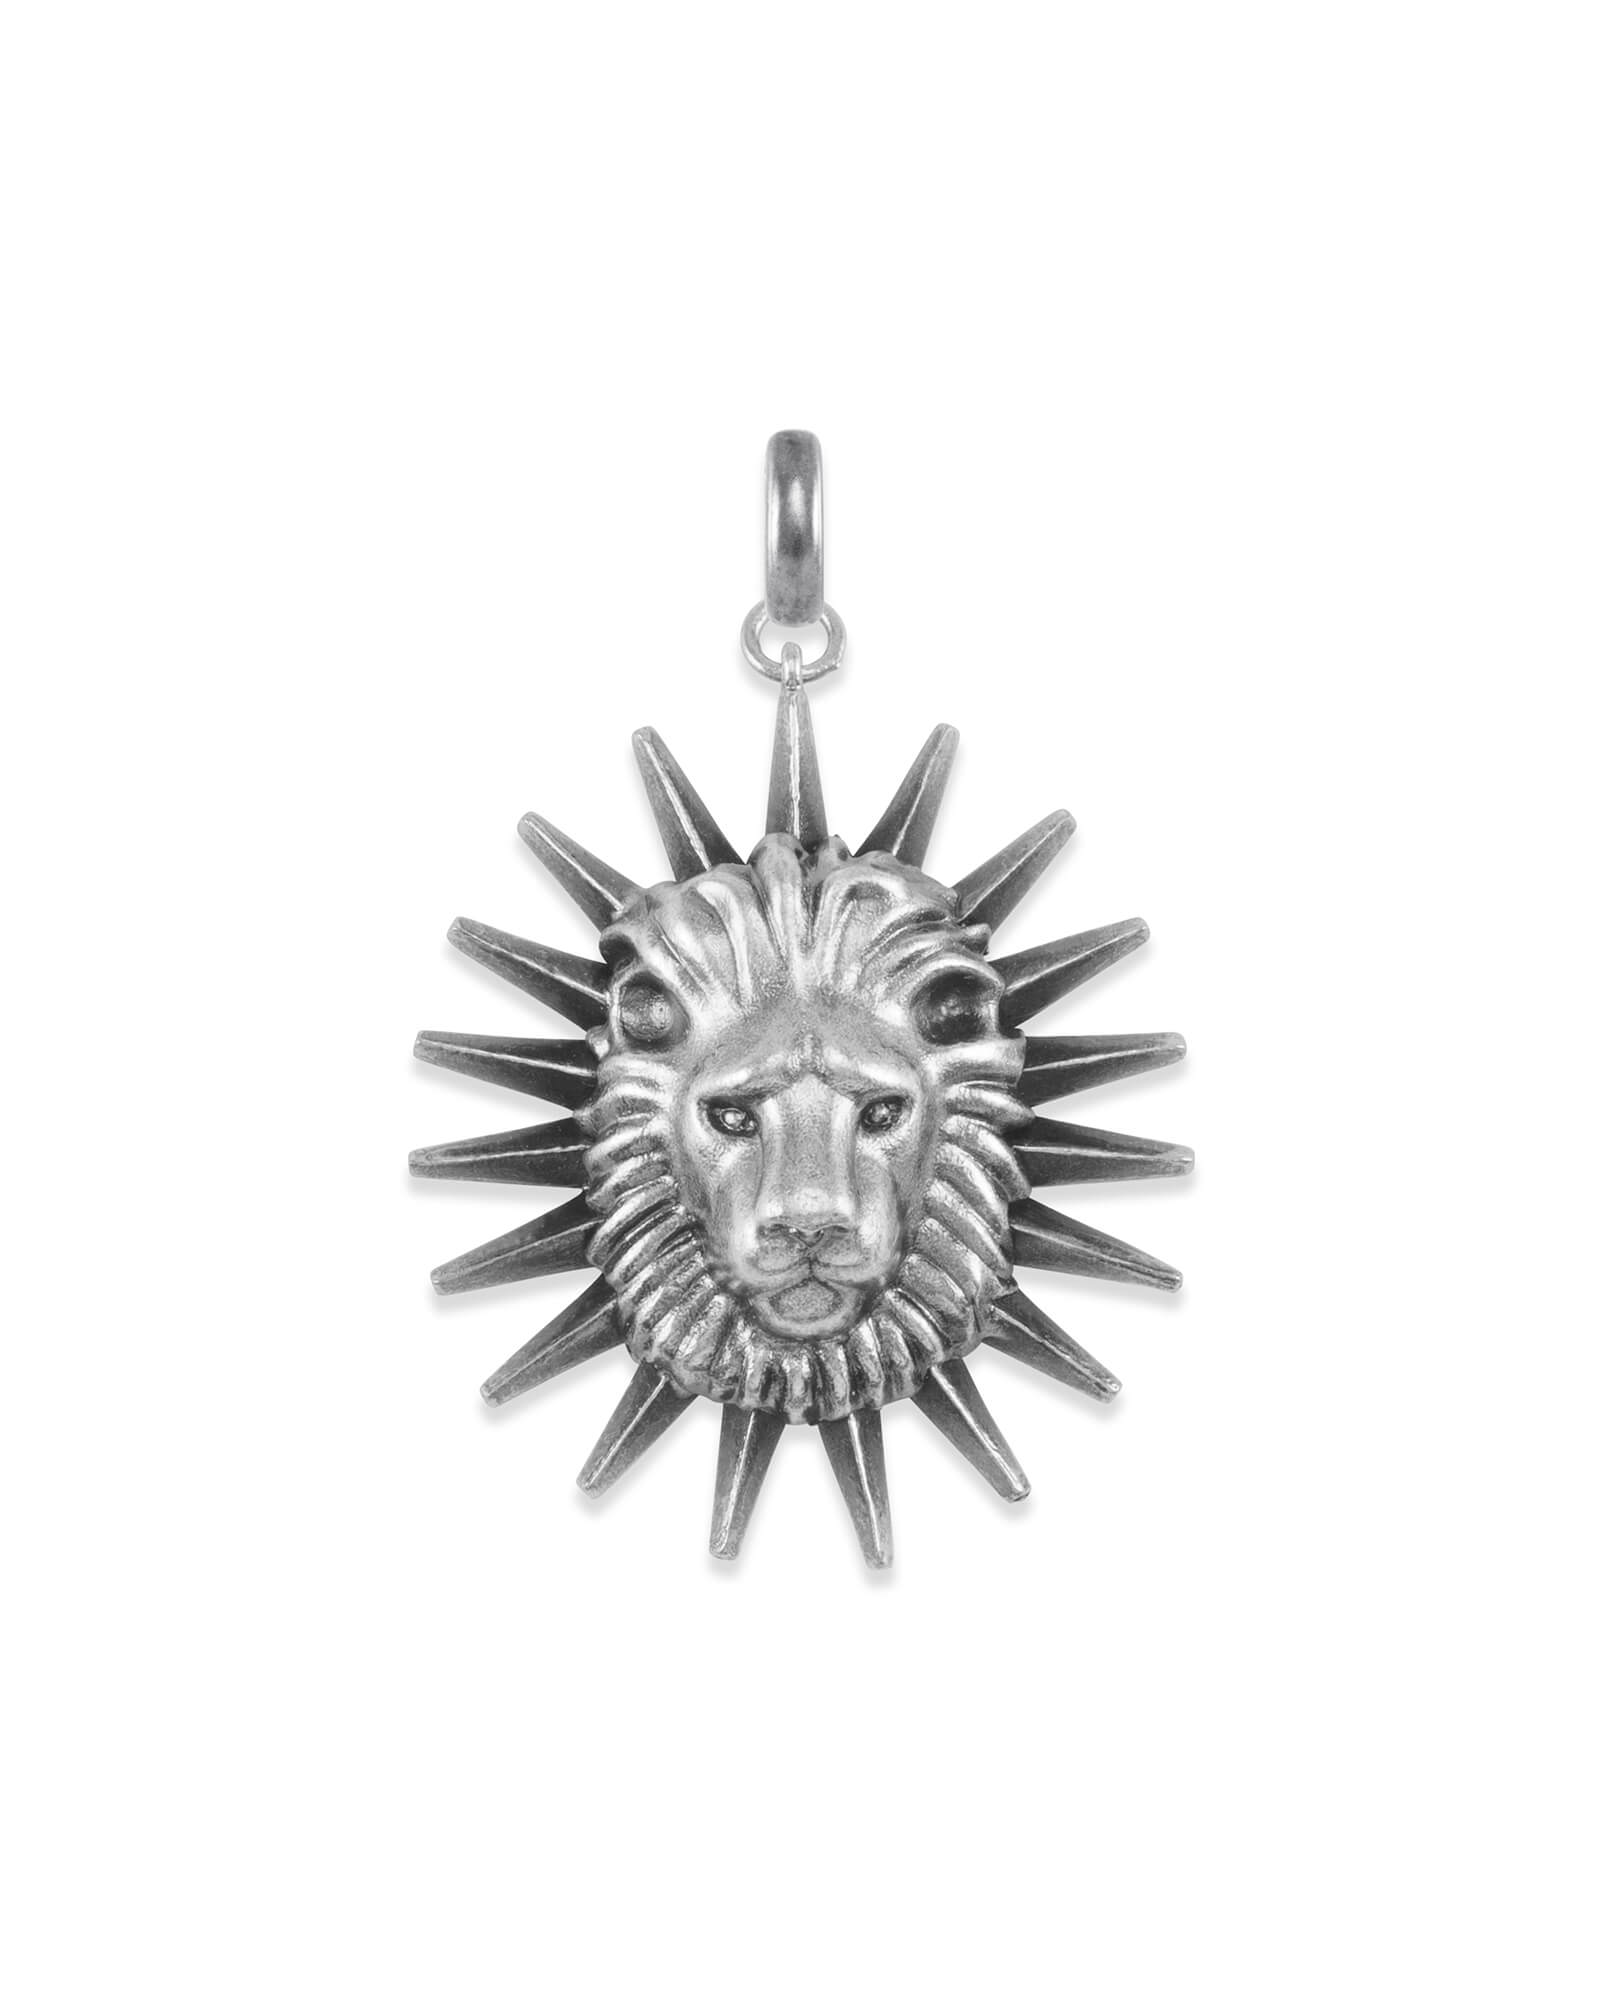 Large Lion Charm in Vintage Silver